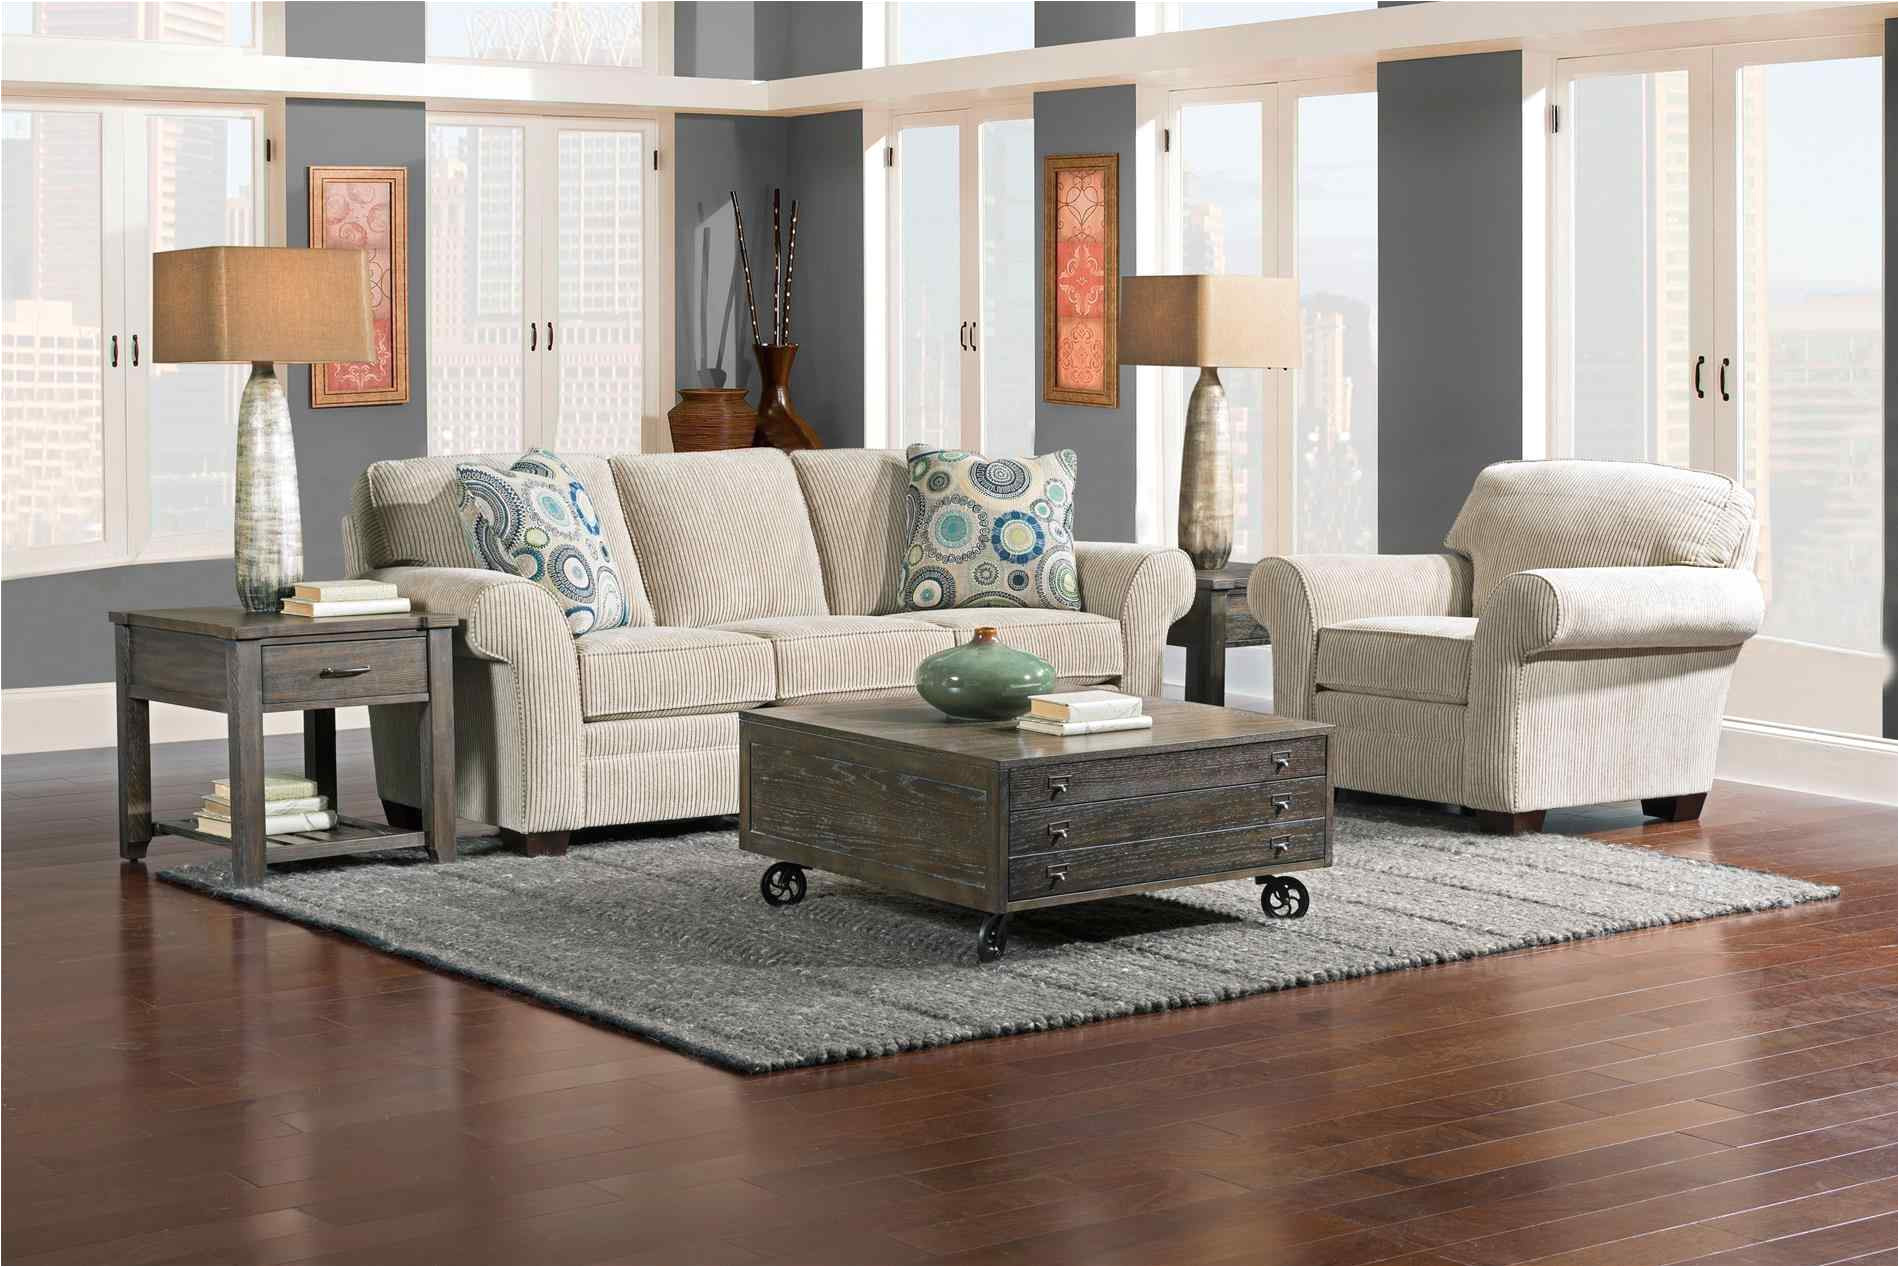 remarkable american home furniture and mattress albuquerque nm at american furniture outlet and clearance center albuquerque nm